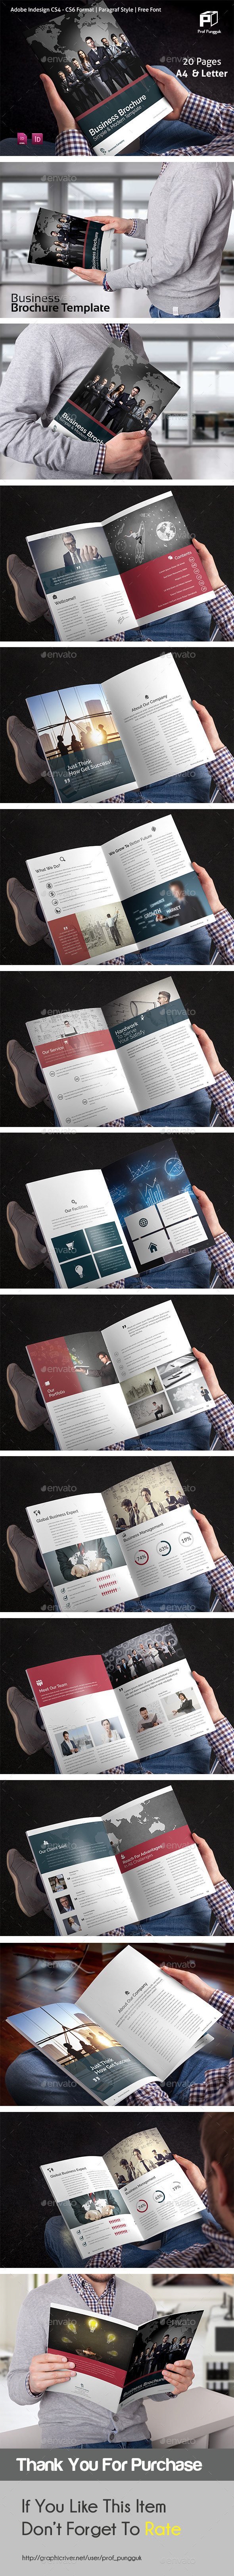 Corporate Brochure Vol.4 - Corporate Brochures